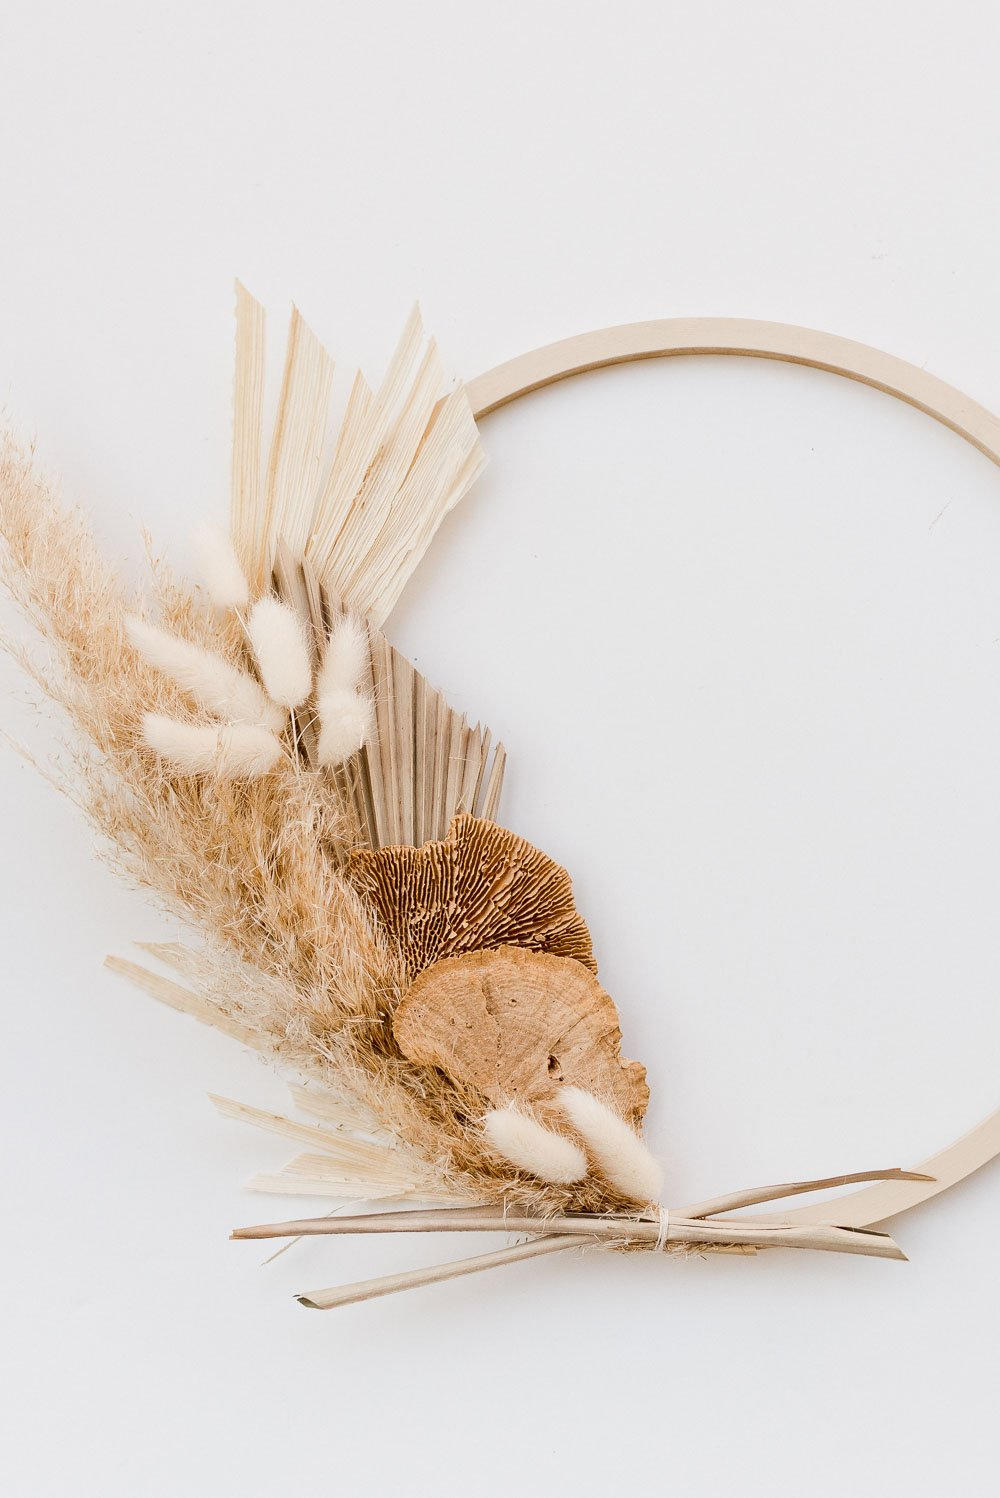 Image of an asymmetrical fall wreath made of pampas grass, wheat, and palm leaves.